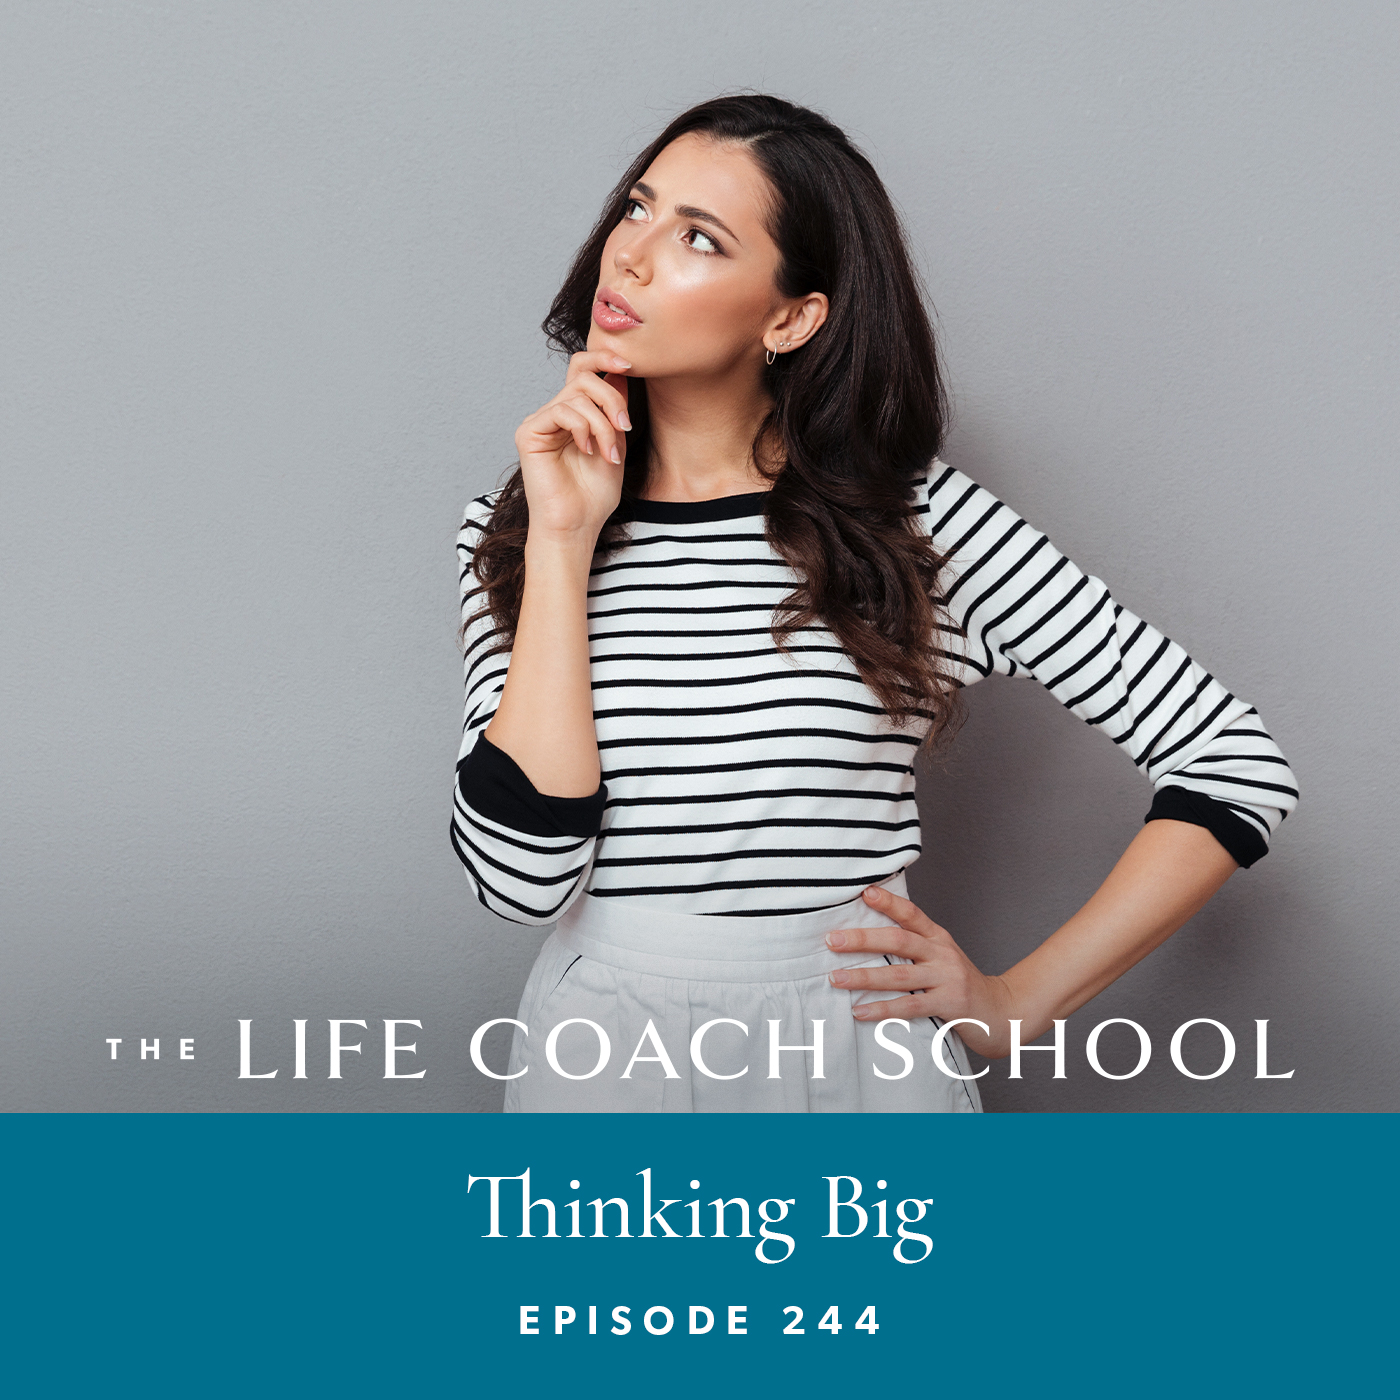 The Life Coach School Podcast with Brooke Castillo | Episode 244 | Thinking Big